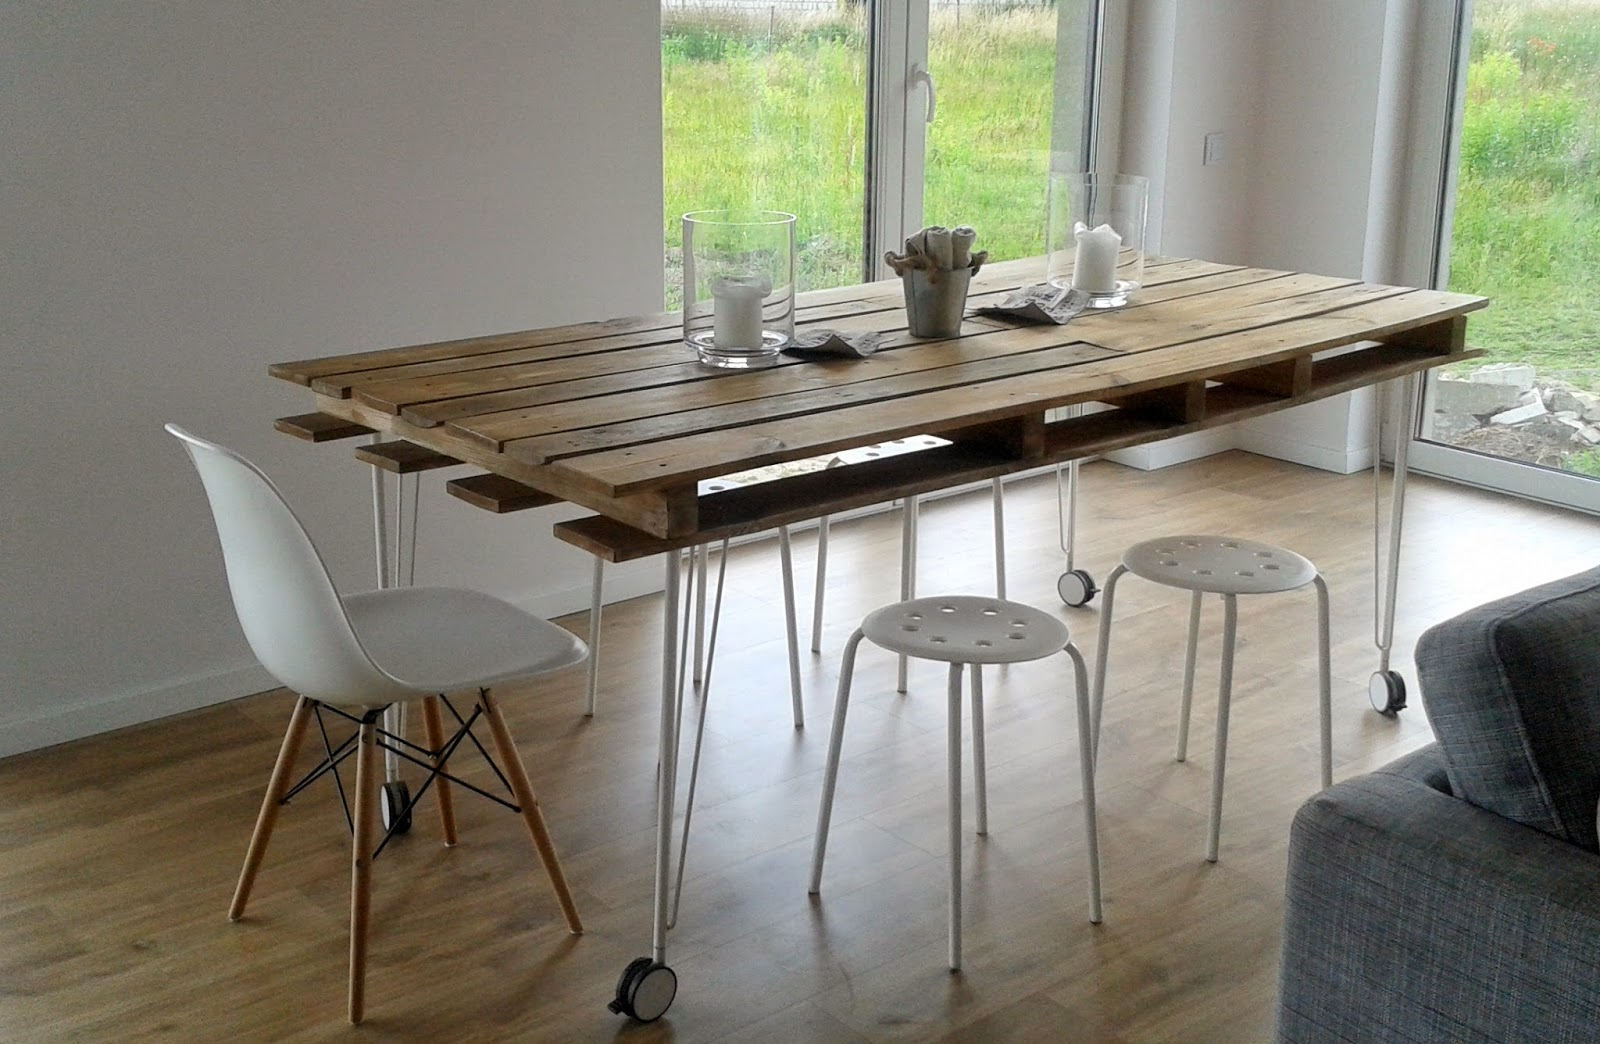 Creative ideas for making beautiful furniture from for Upcycled dining table